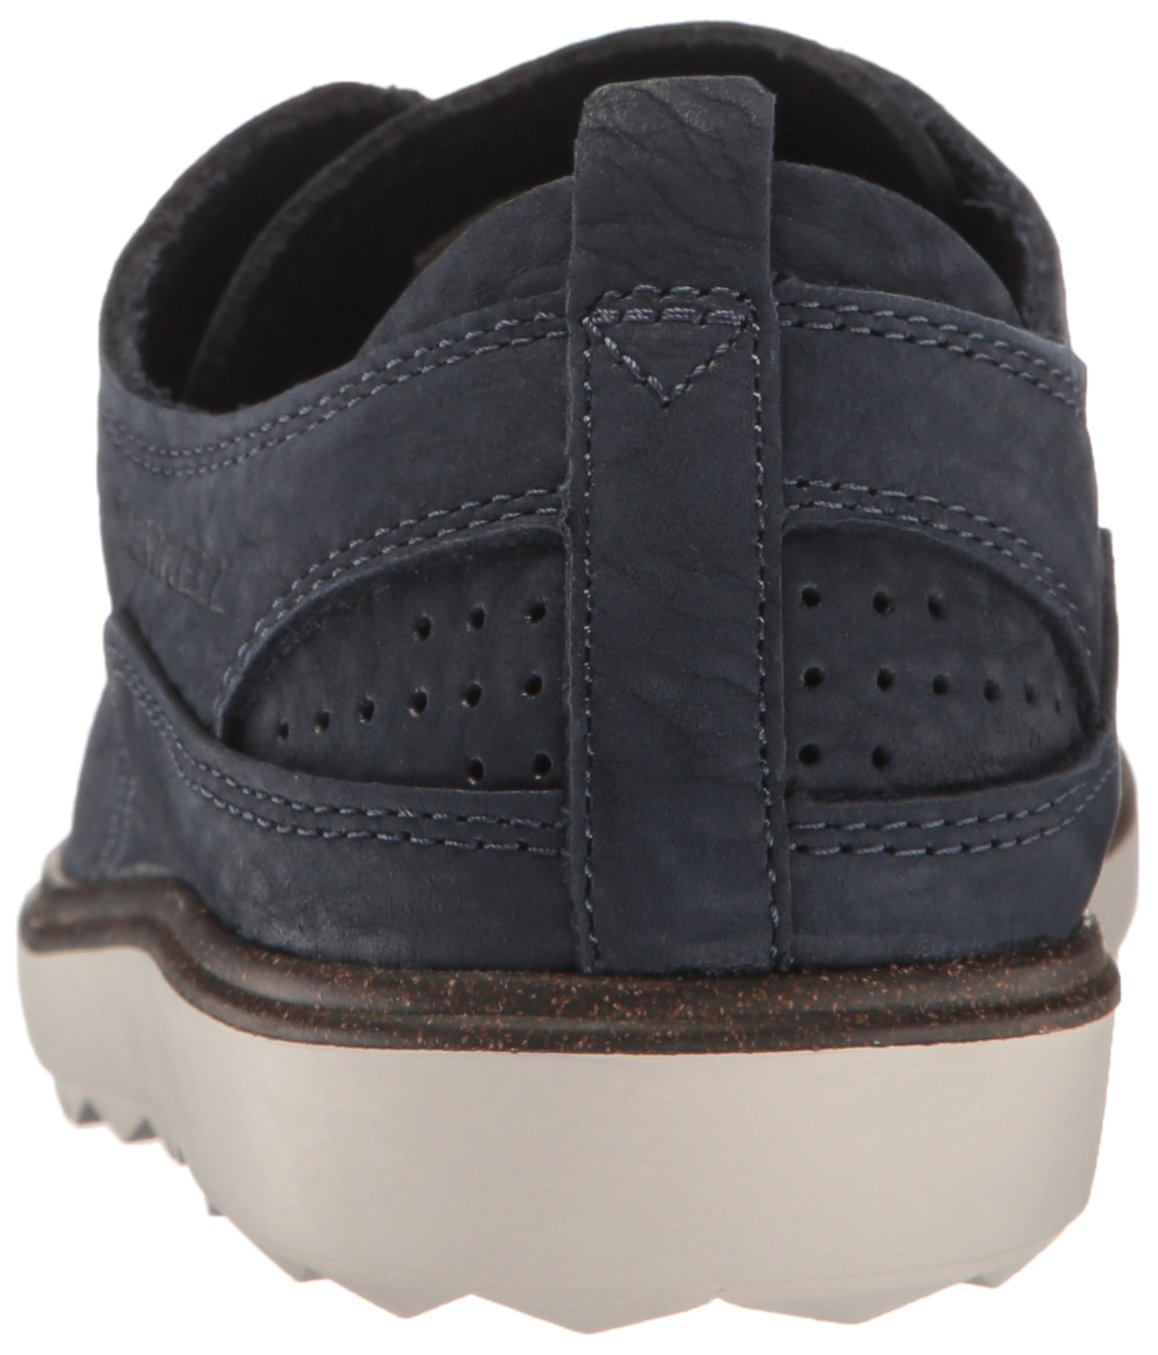 Merrell Around Sneakers Town Womensladies Urban Lace Air Suede 7vf6Ybgy